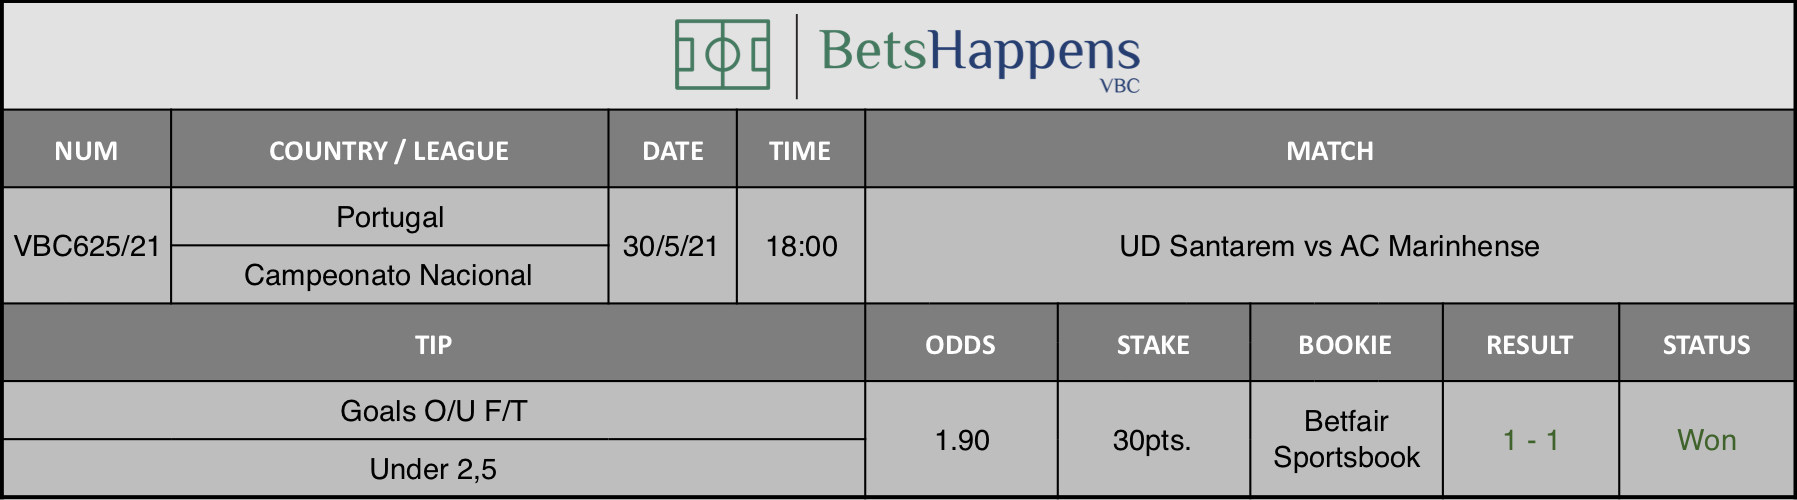 Results of our tip for the UD Santarem vs AC Marinhense match where Goals O/U F/T Under 2,5 is recommended.